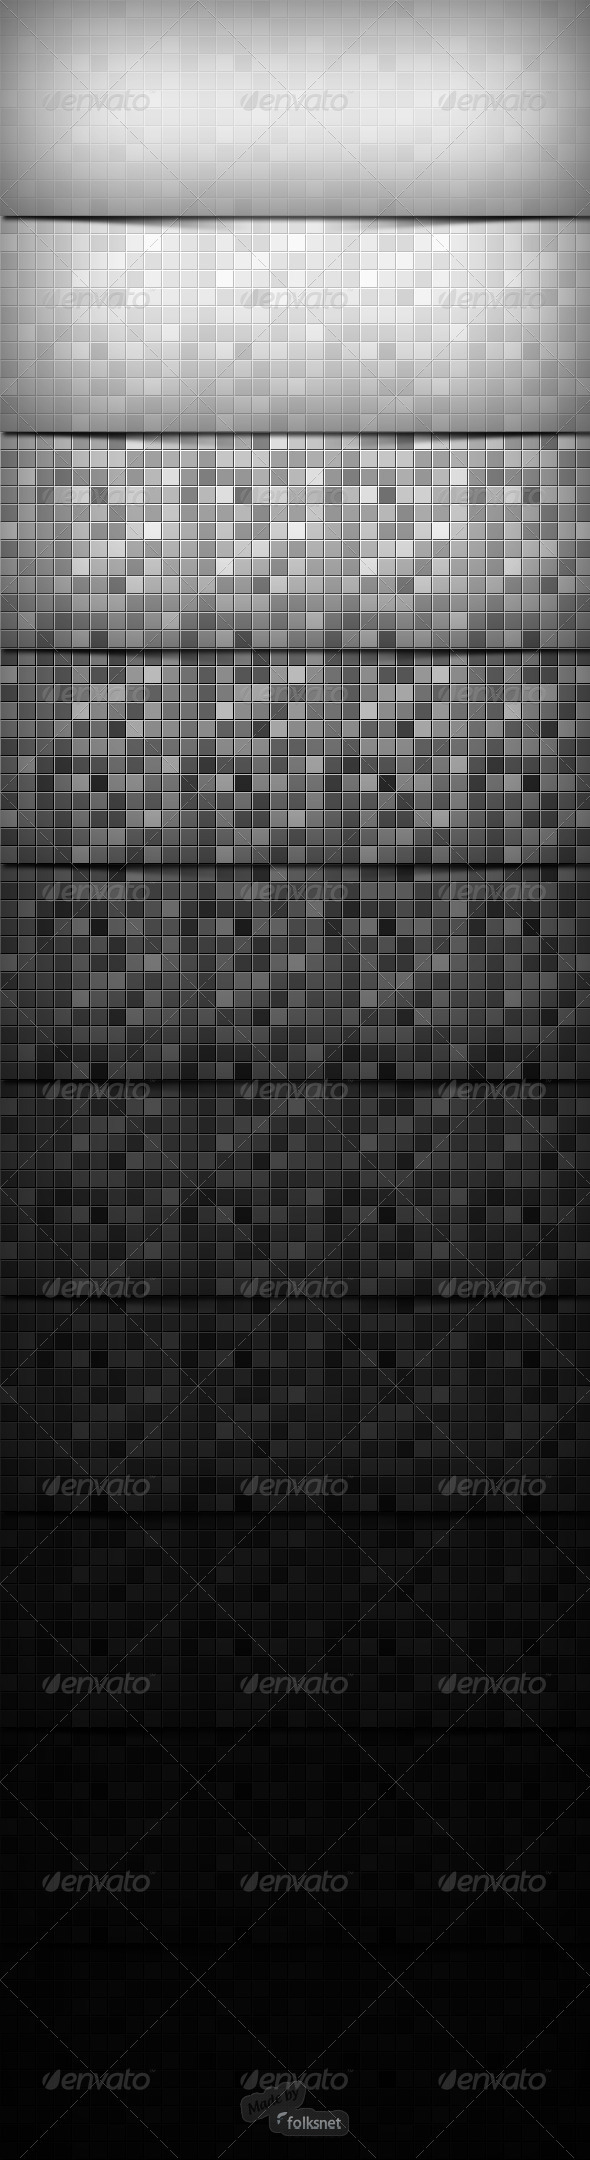 Mozaic Textures 2.0 - Patterns Backgrounds